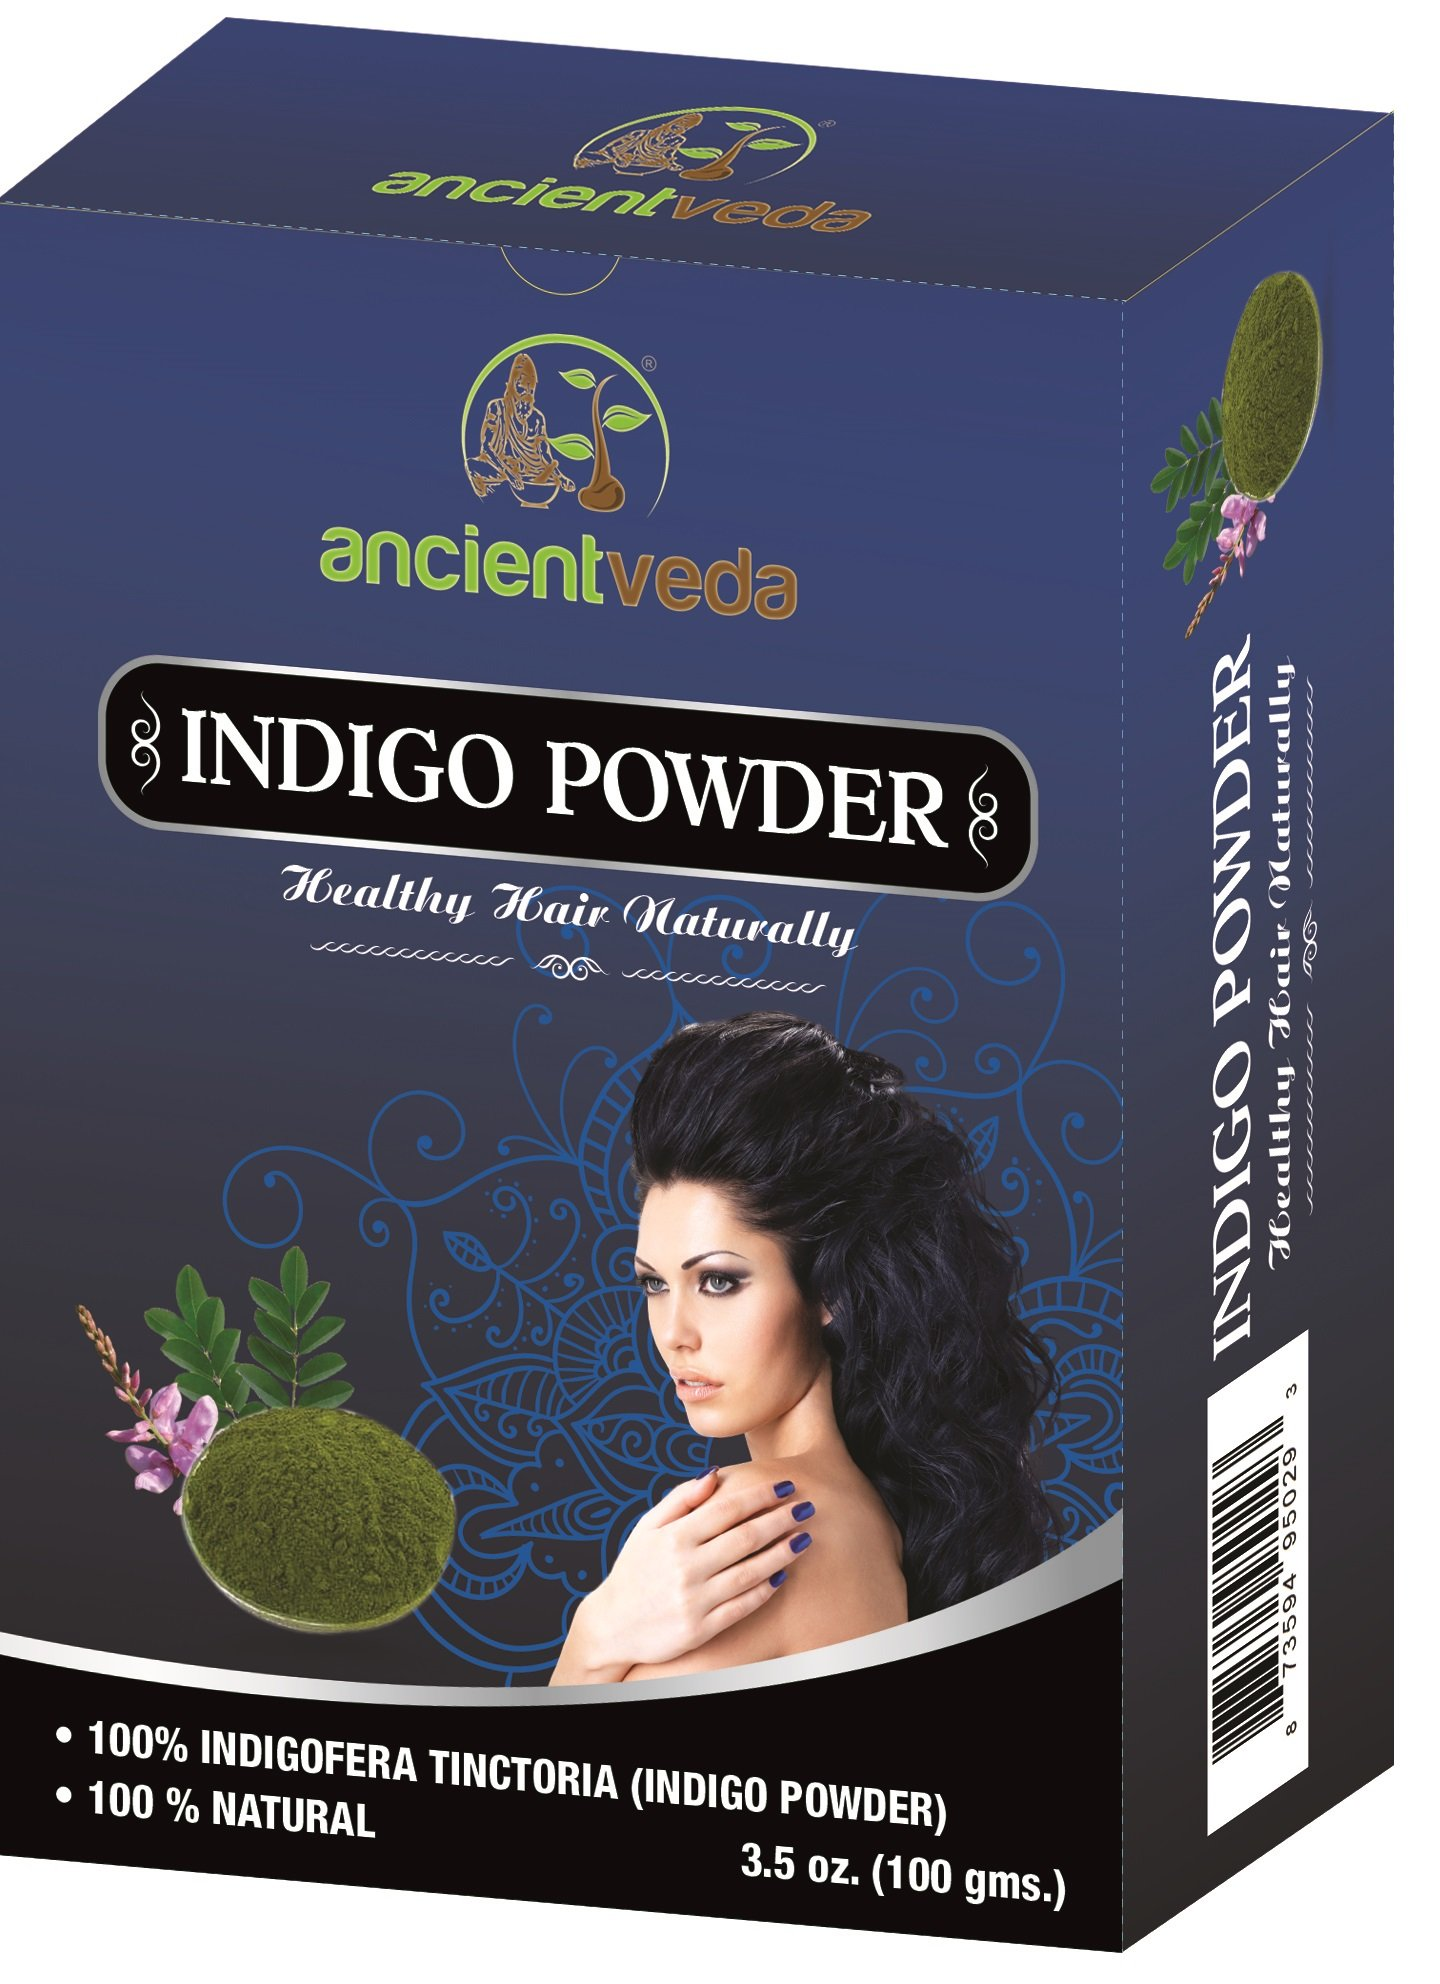 Indigo Powder, 7 Oz(Pack of 2 X 100 Gms) - NO Fillers, NO Preservatives, NO Chemicals - Ancient Veda